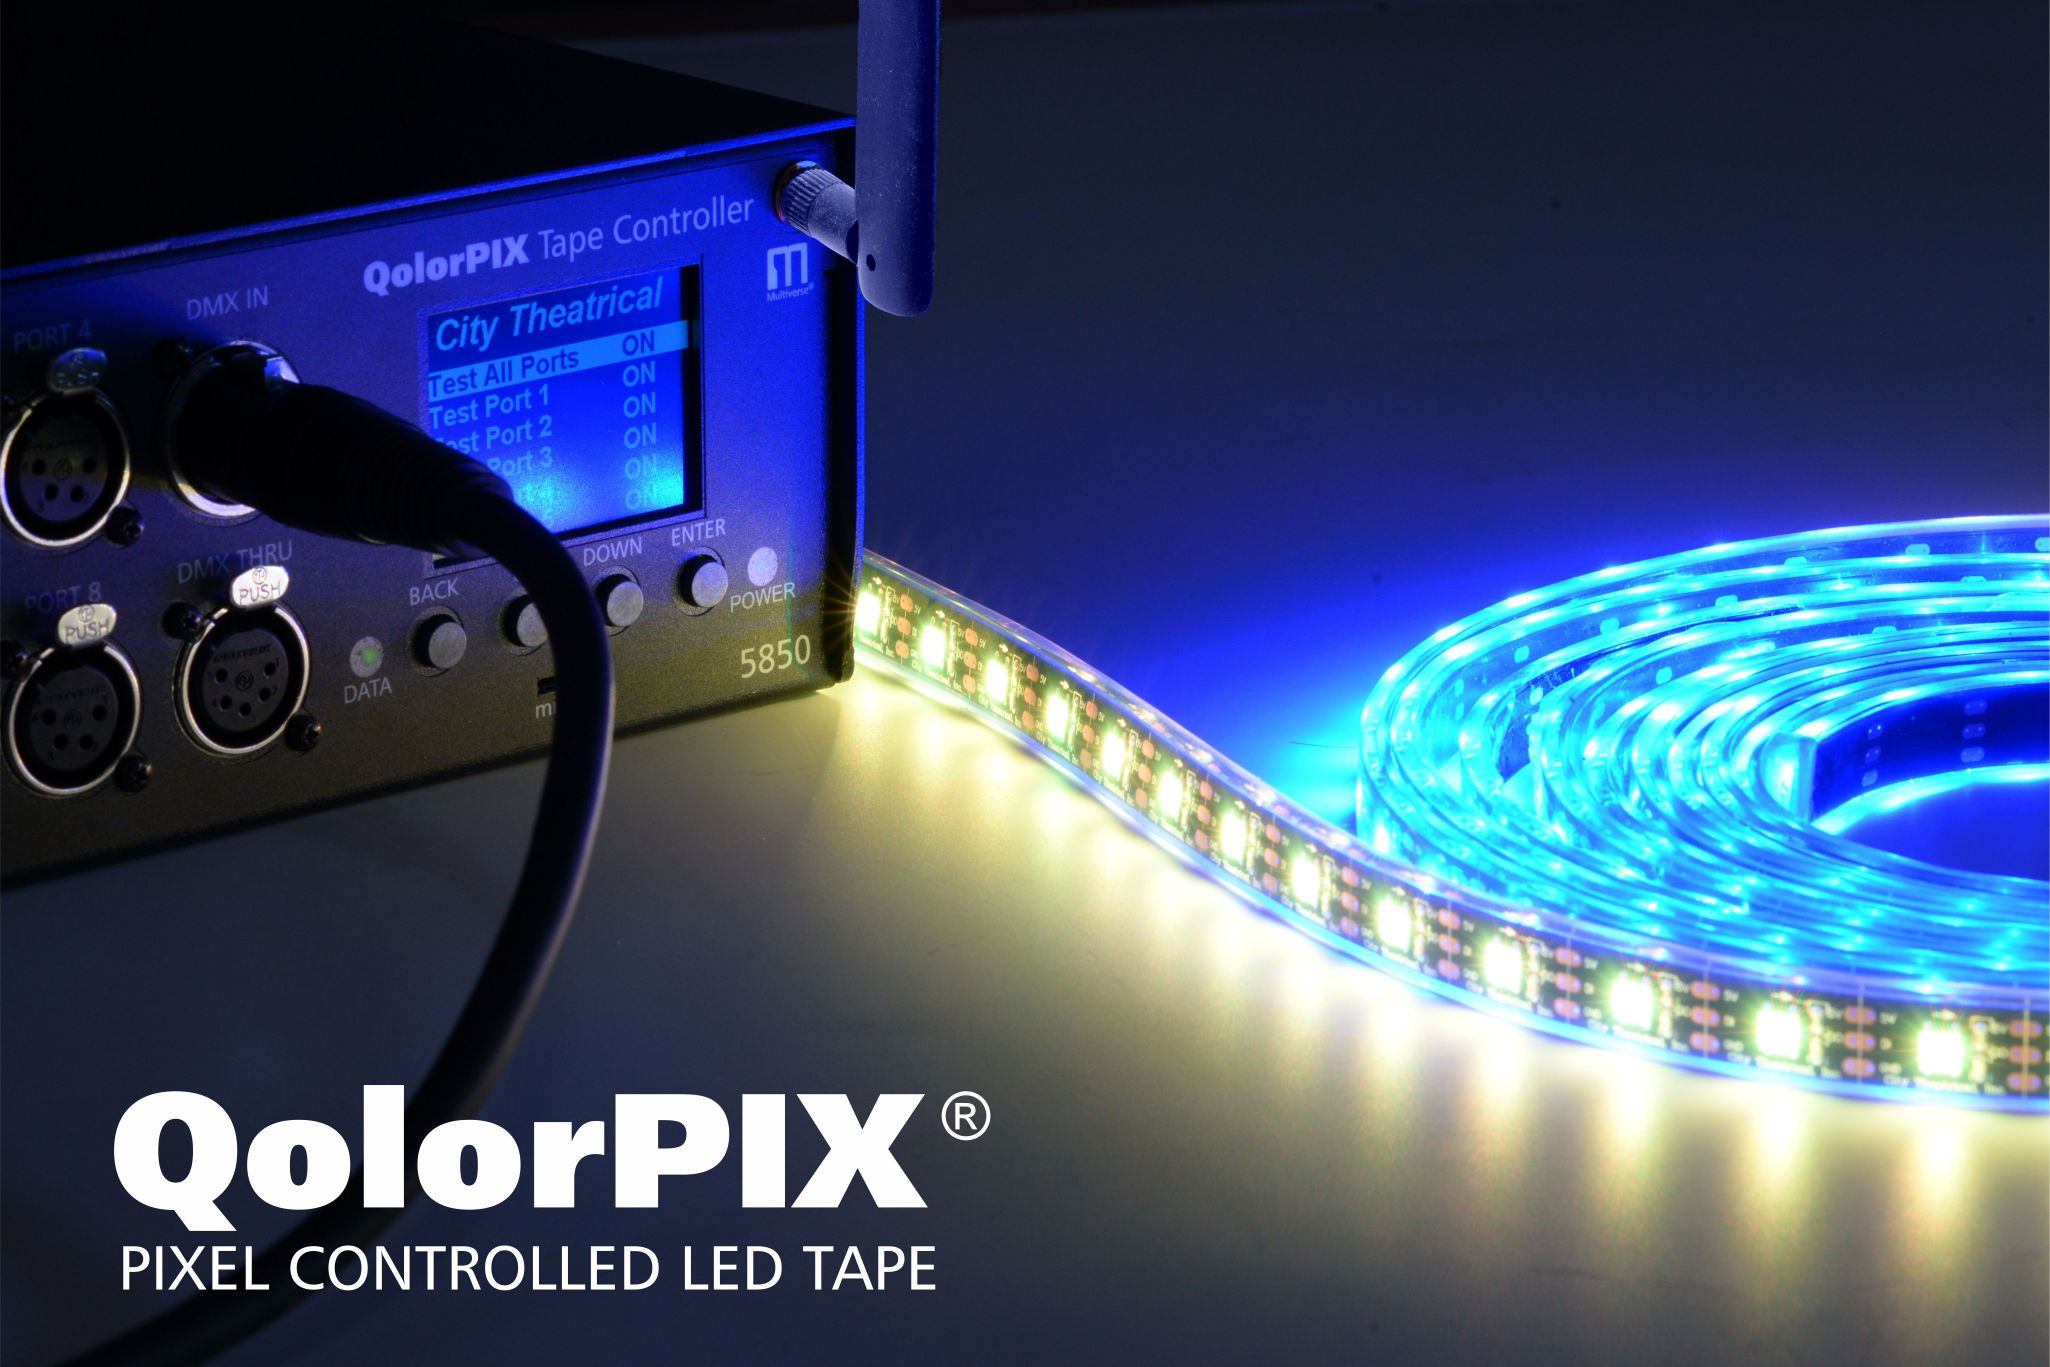 QolorPIX Pixel Controlled LED Tape and Controller